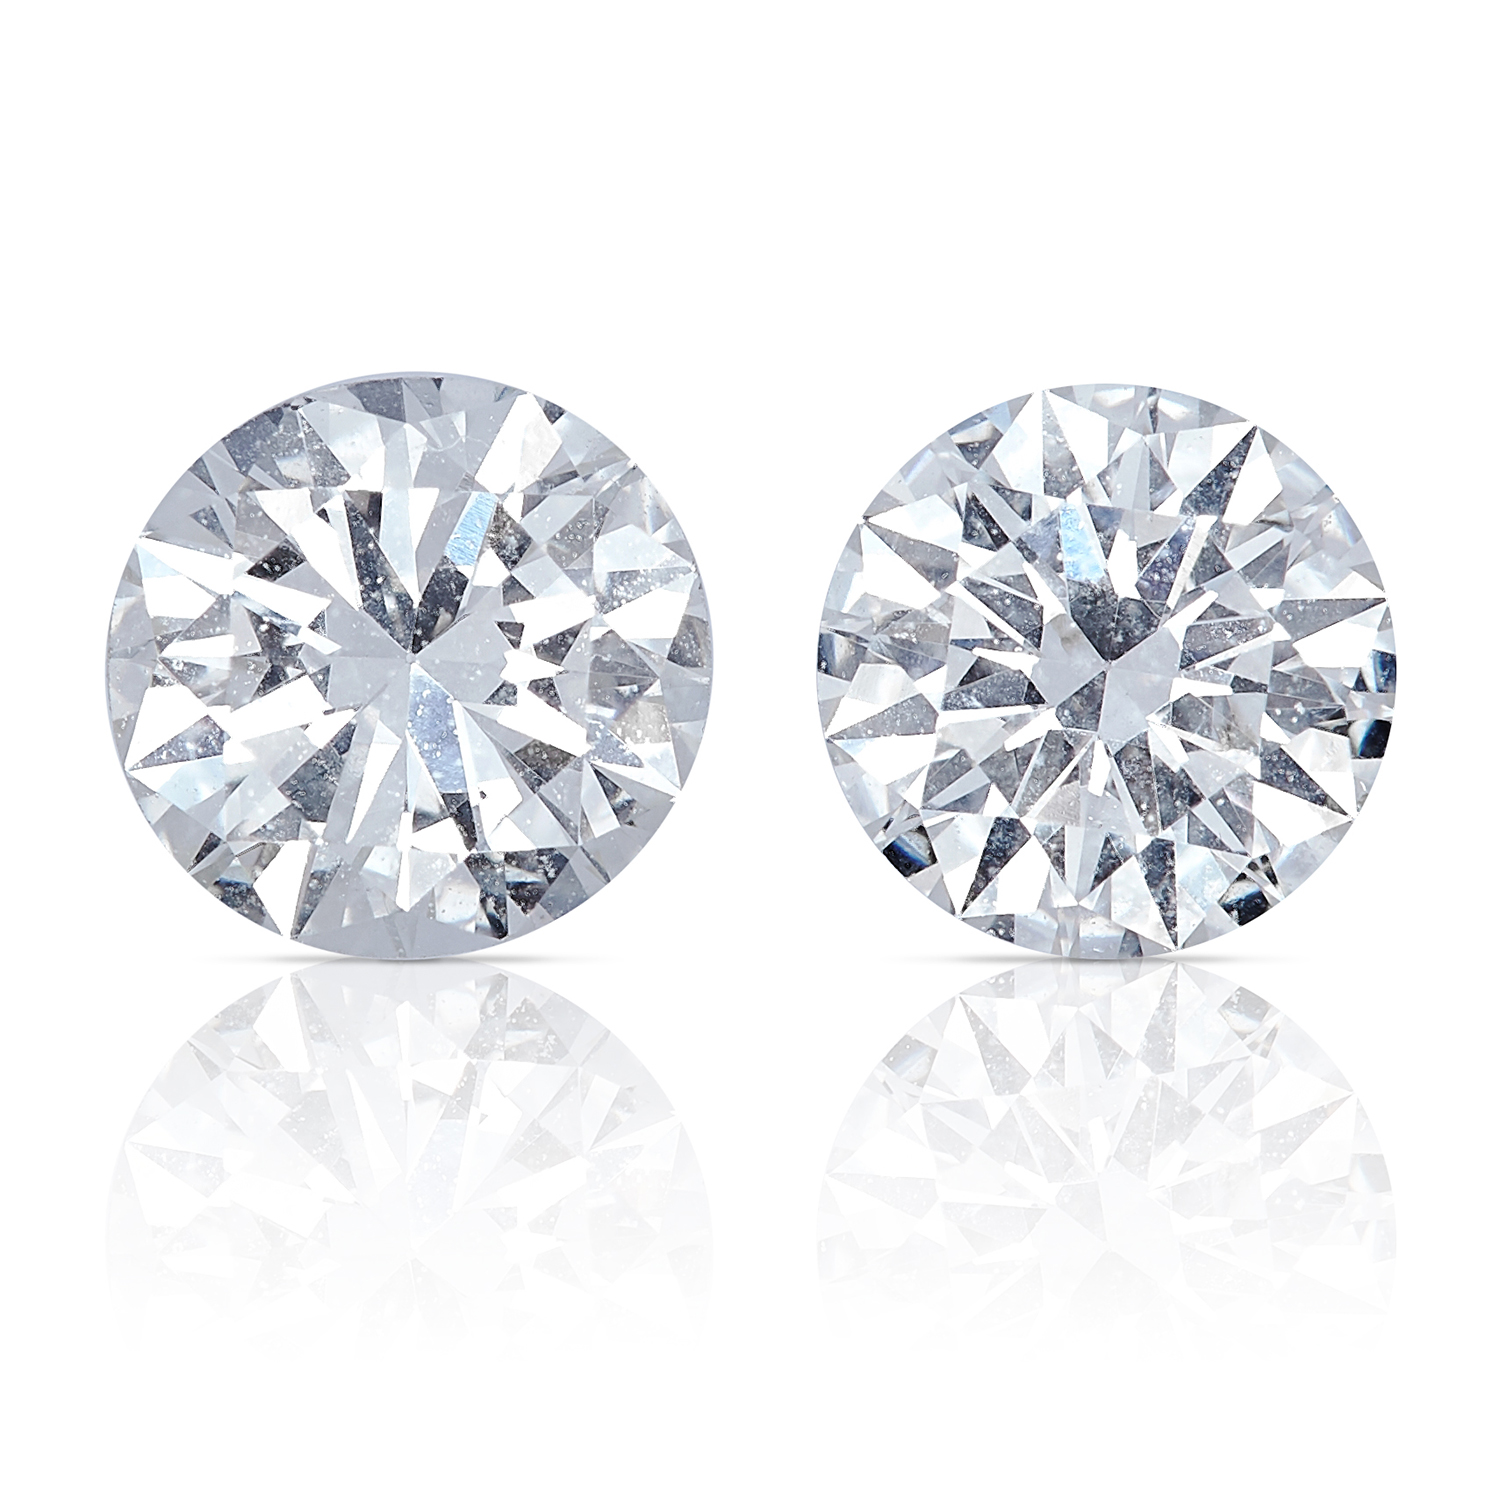 TWO ROUND CUT MODERN BRILLIANT DIAMONDS, TOTALLING 0.71cts, UNMOUNTED.